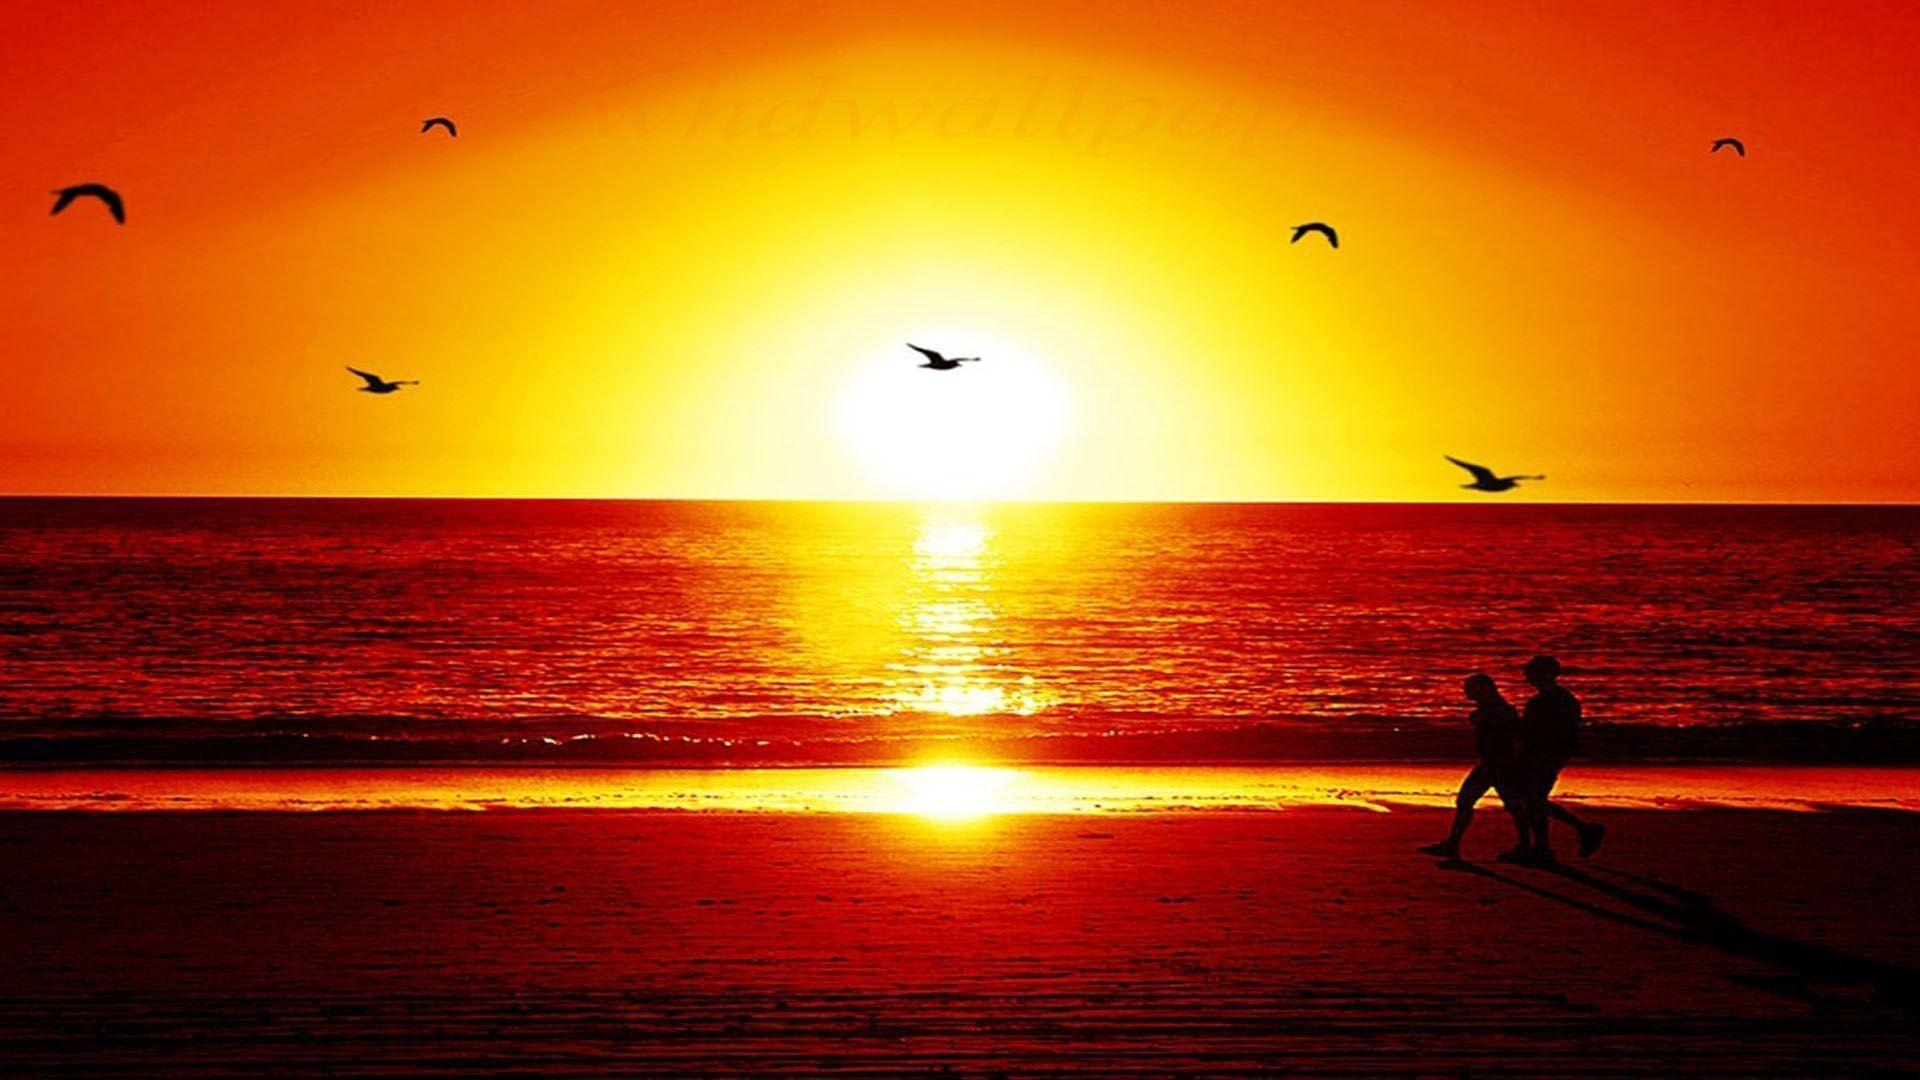 Sunset Wallpaper 51 Backgrounds | Wallruru.